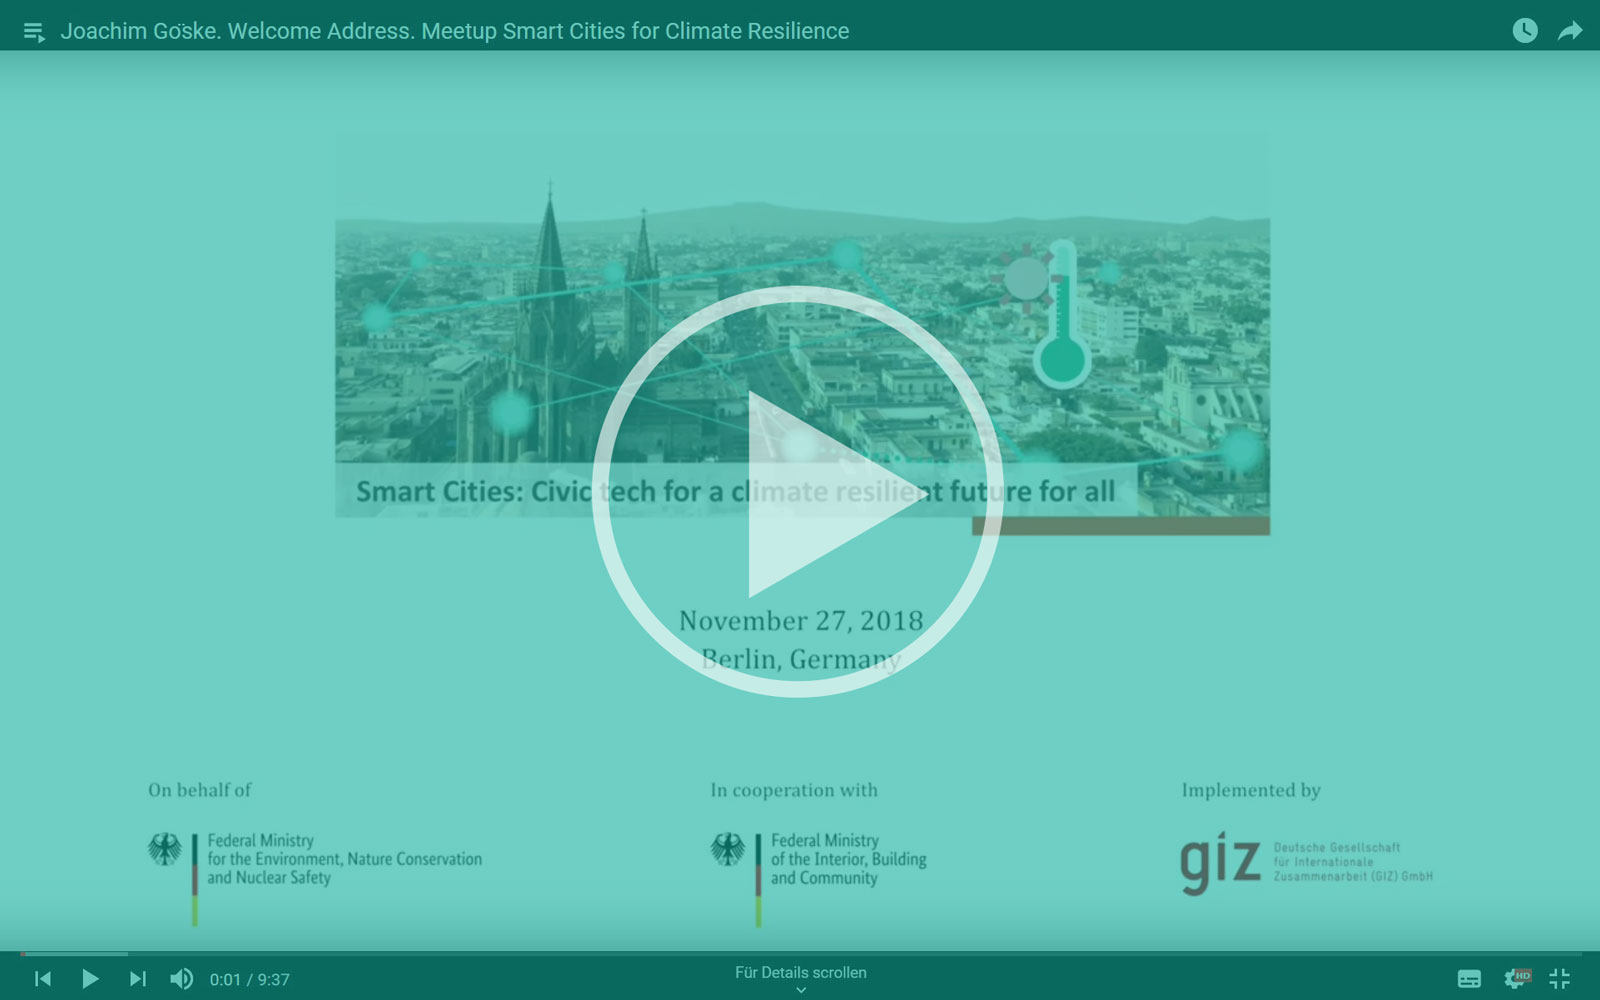 YouTube: Meetup Smart Cities for Climate Resilience